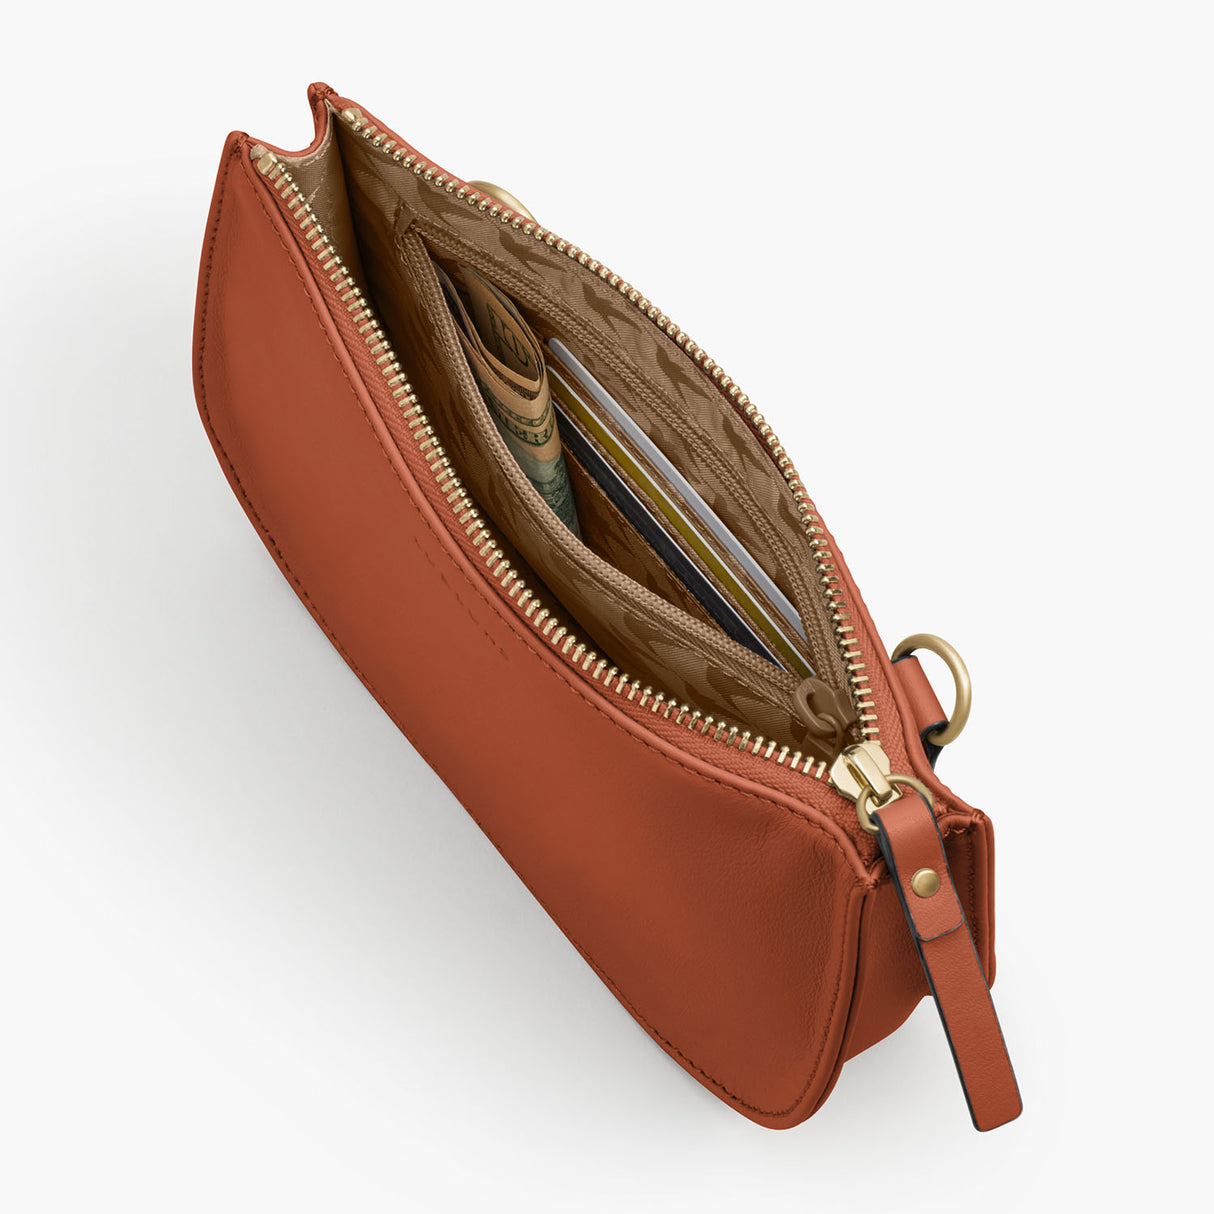 Interior Zipper - The Waverley 2 - Nappa Leather - Sienna / Gold / Camel - Crossbody - Lo & Sons